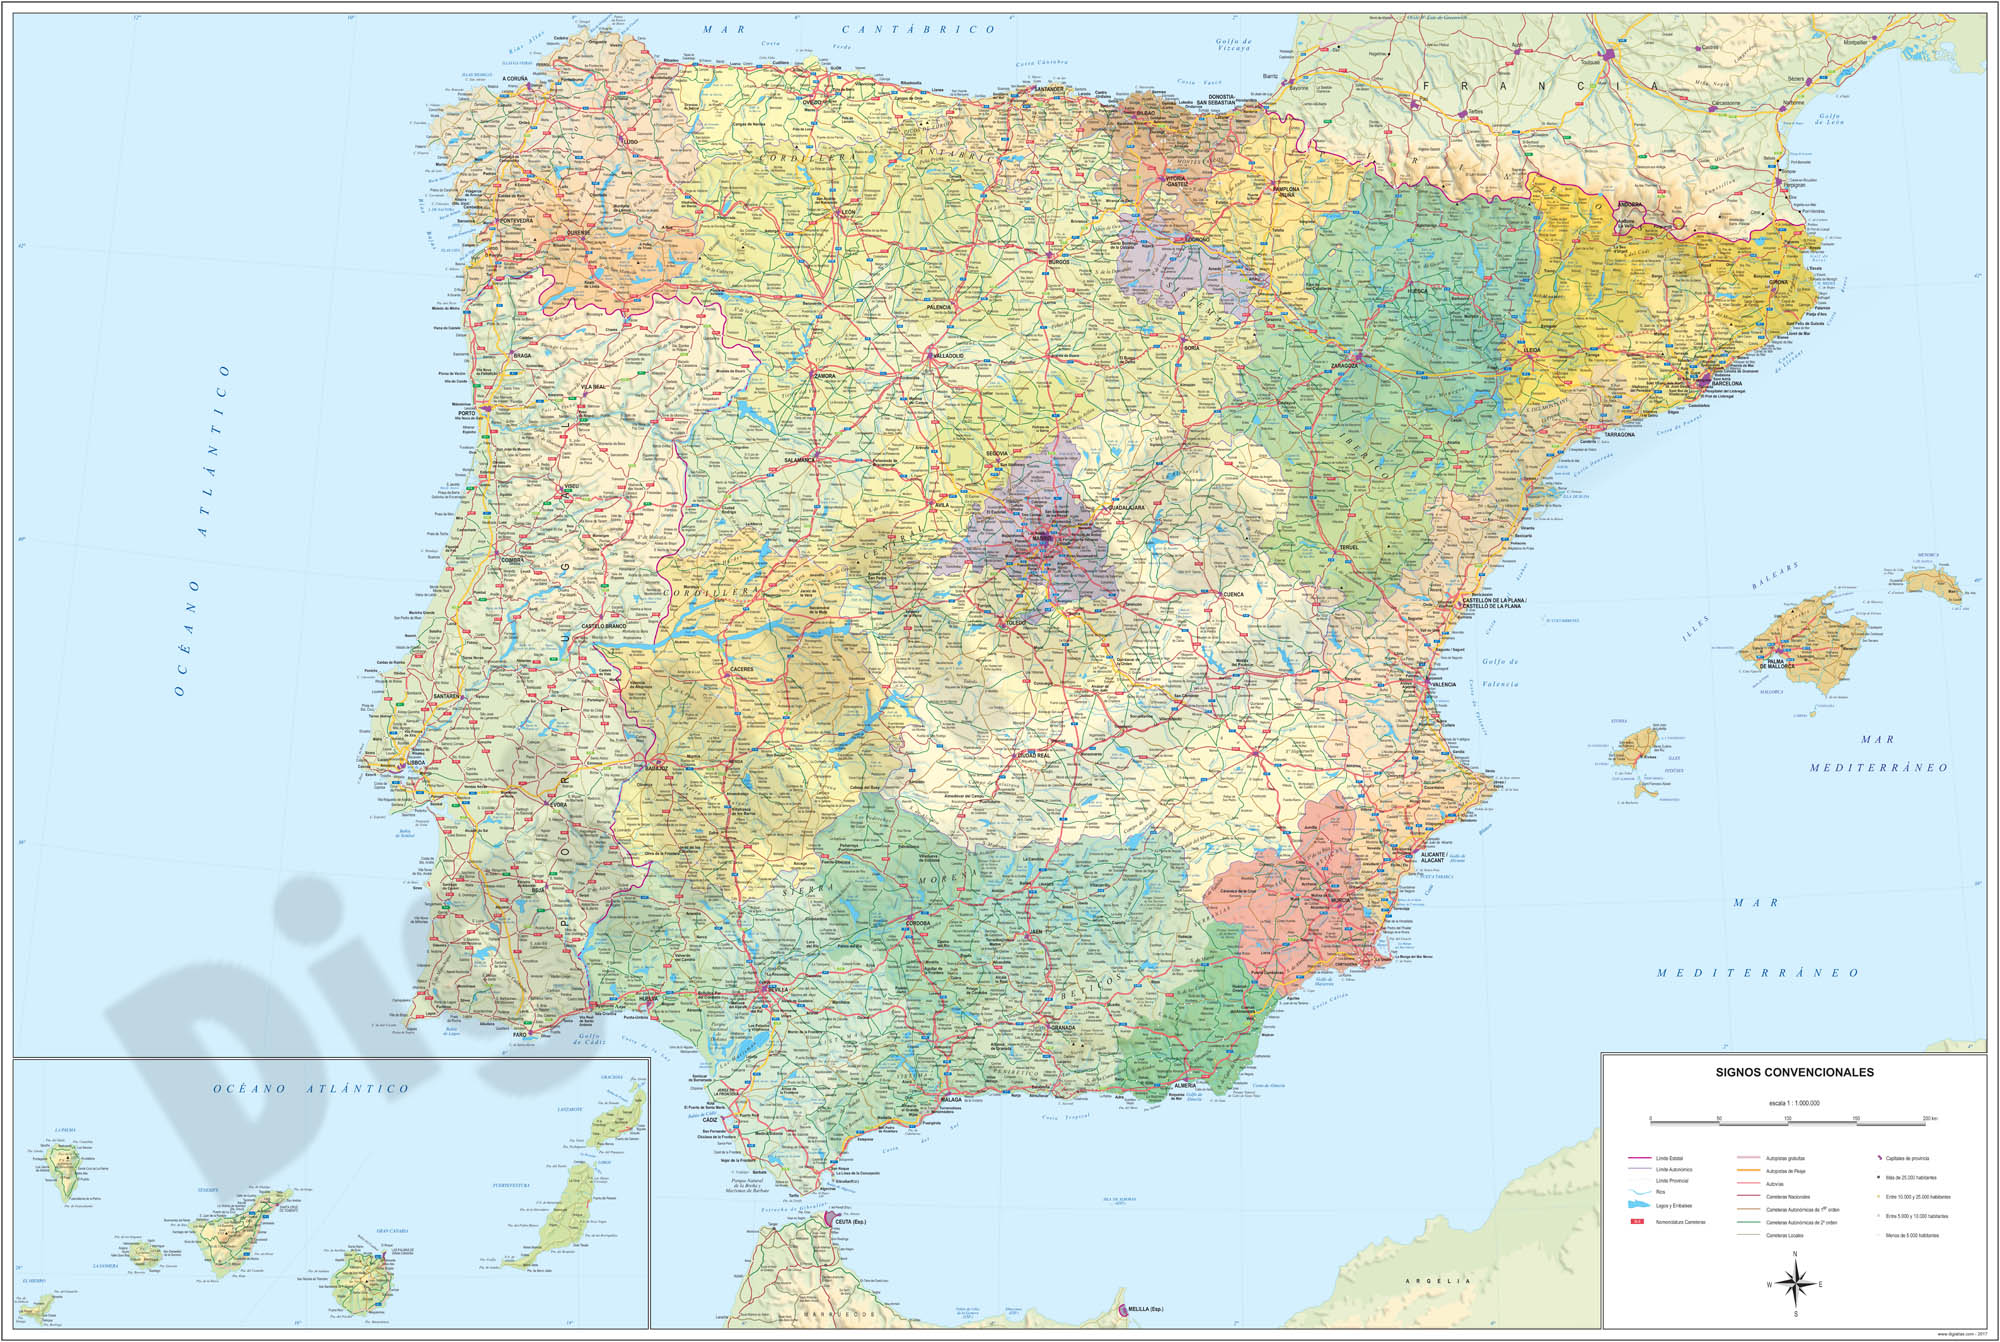 Political Map Of Spain 2017.Digiatlas Digital Maps And Cartography